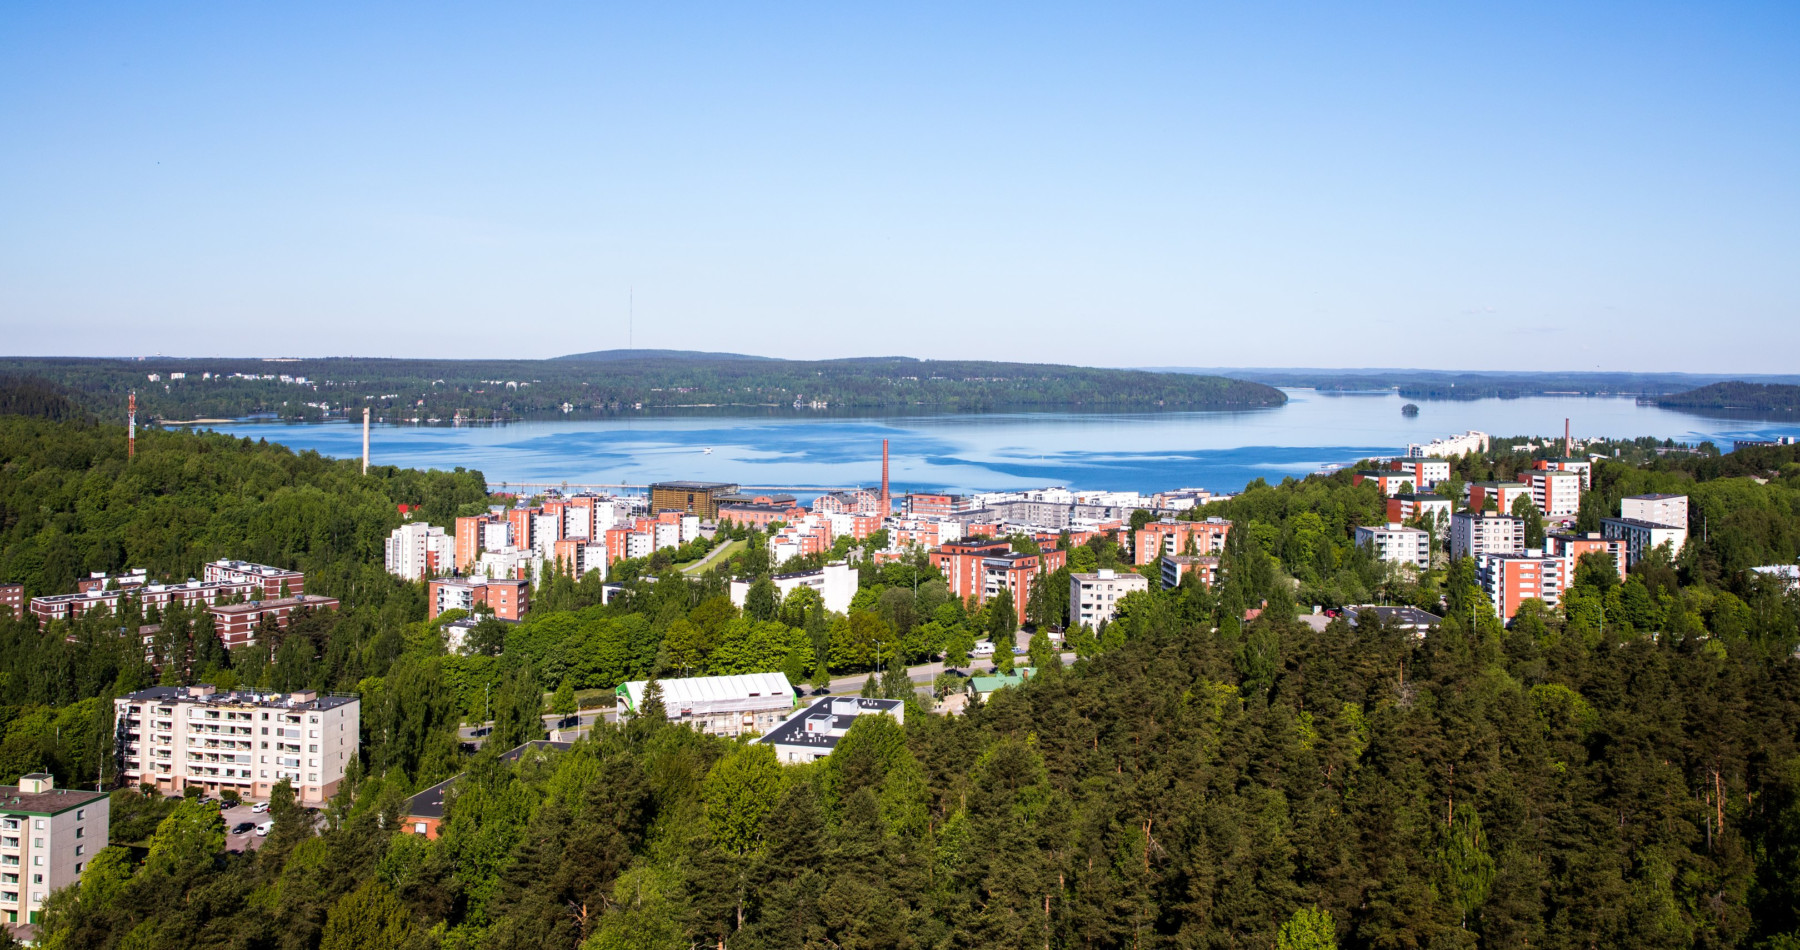 A panoramic view of a city beside a lake.